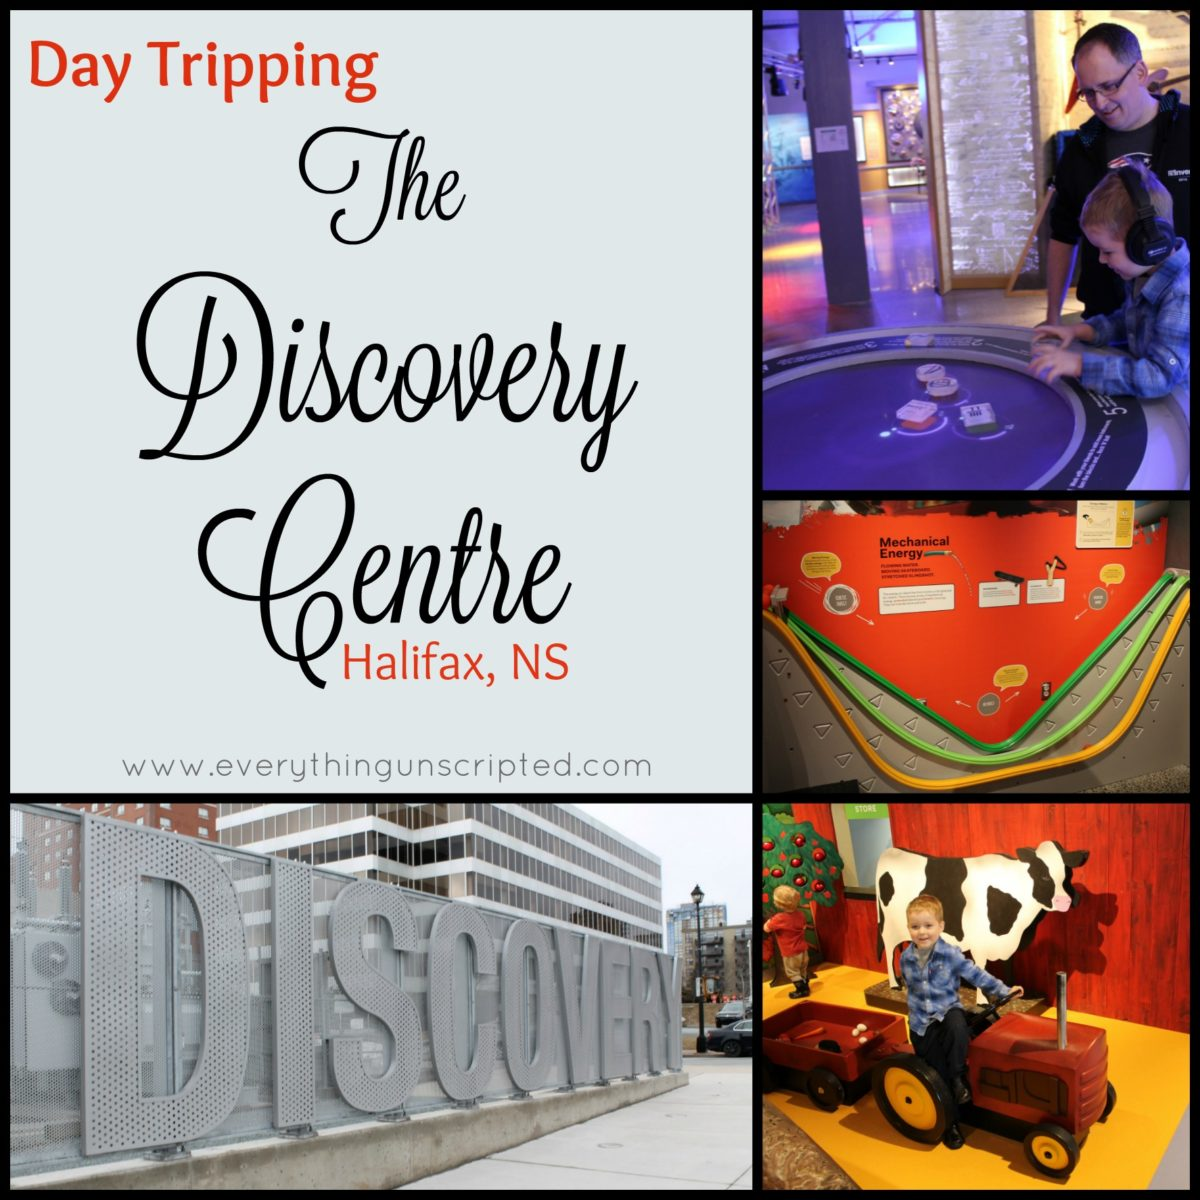 The Discovery Centre- Halifax, NS